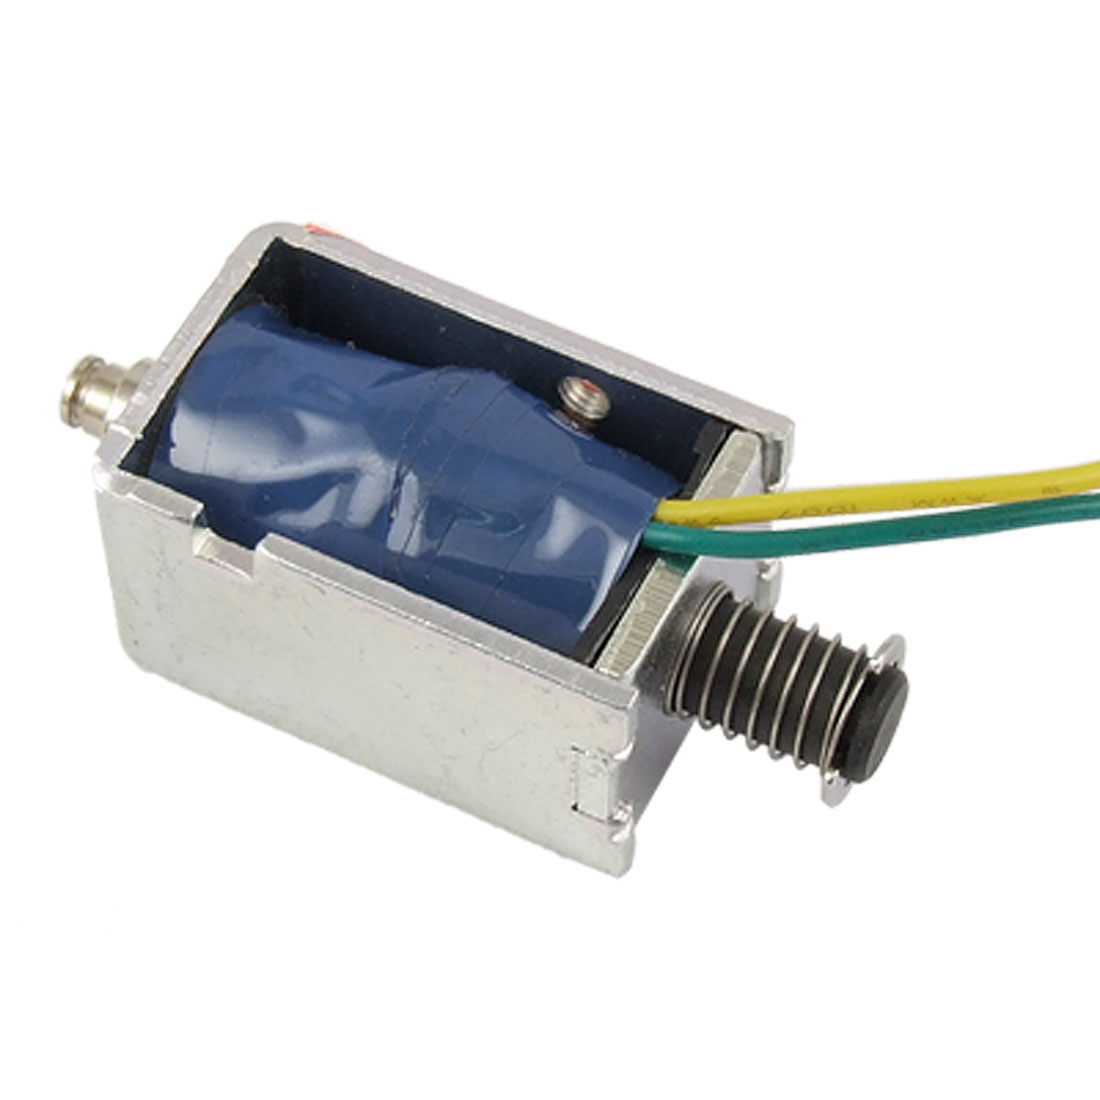 DC 12V 7.9W 0.66A Push Type Open Frame Solenoid Electromagnet